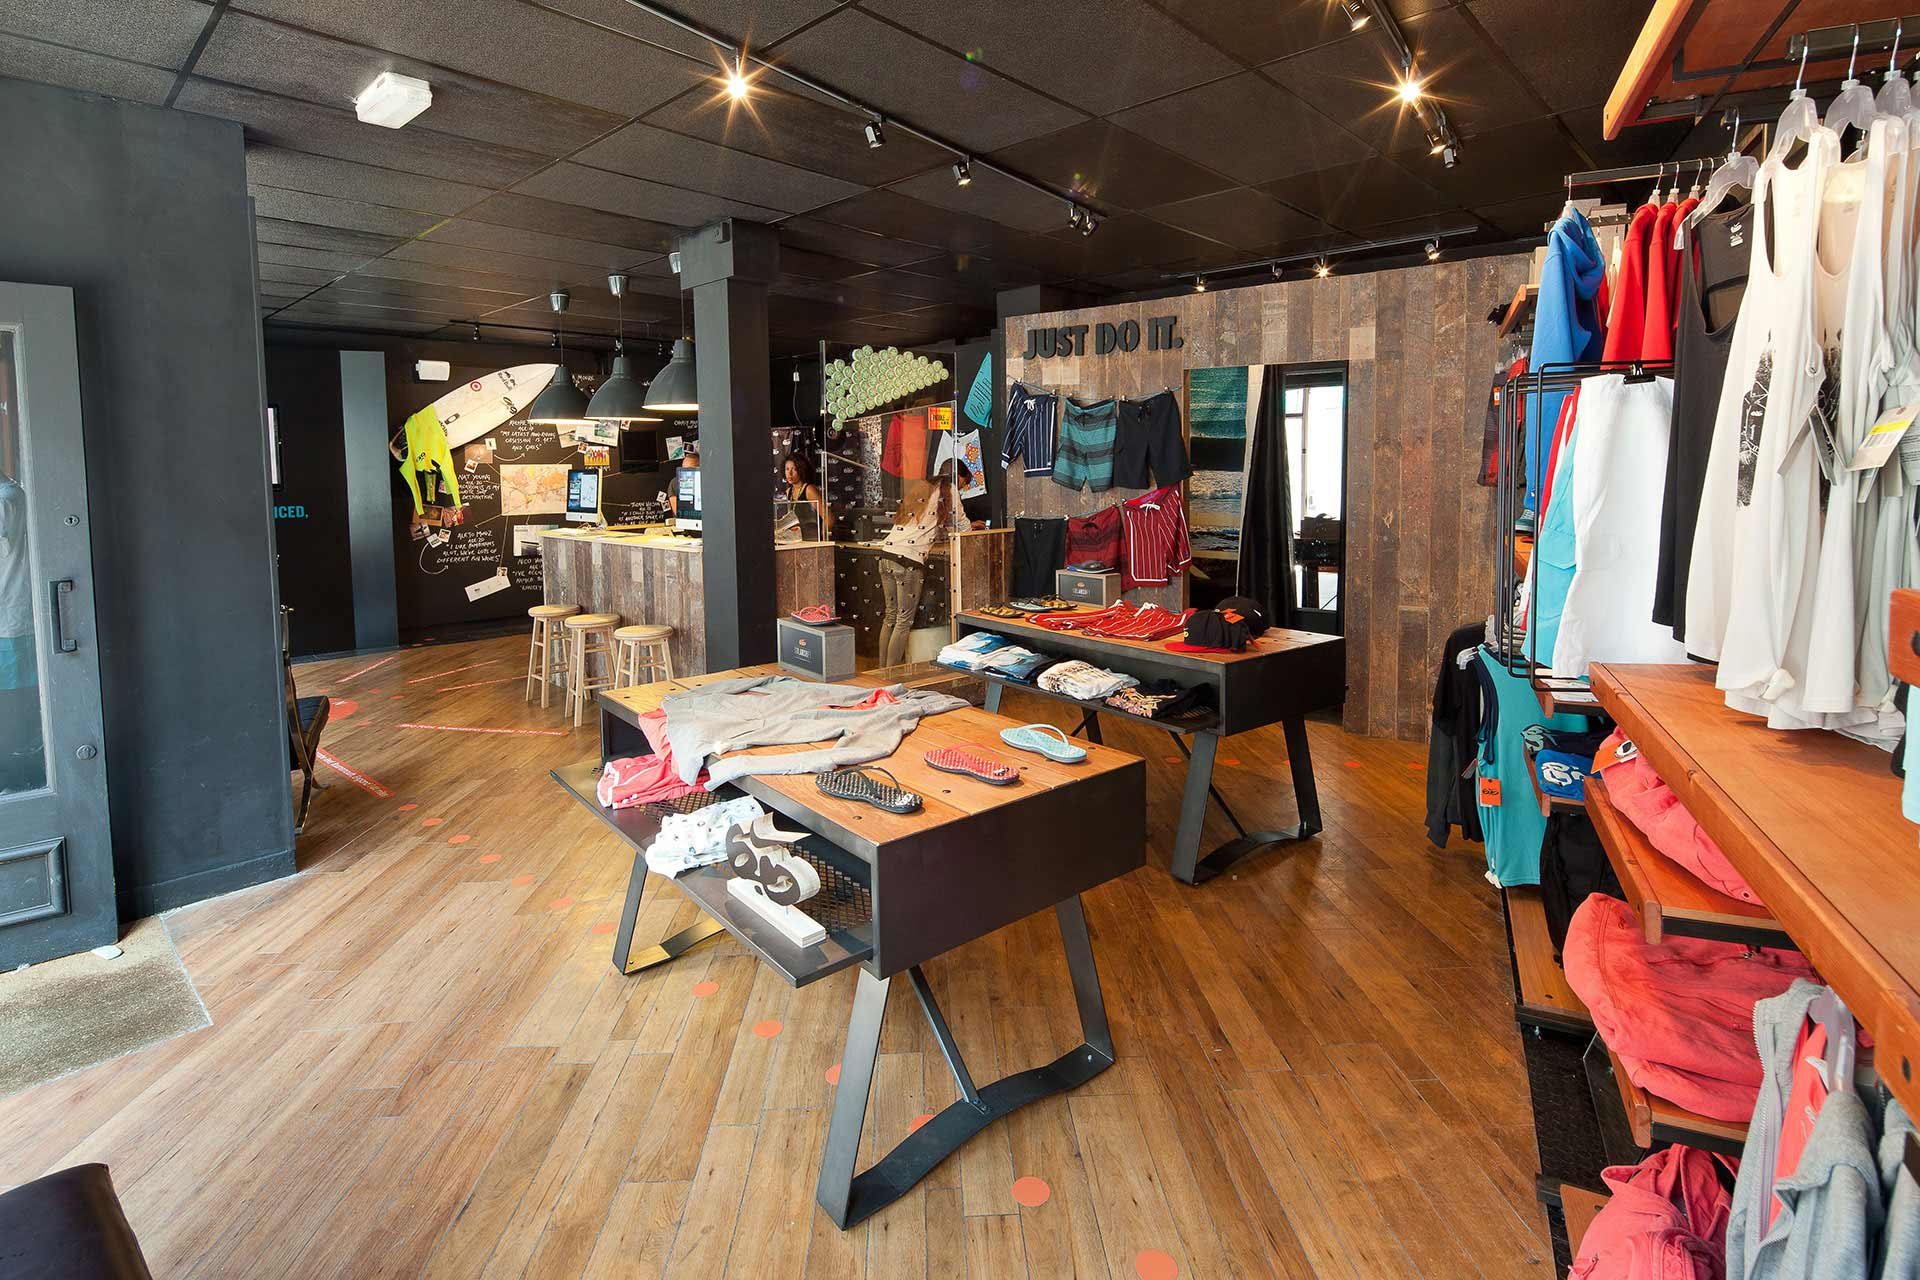 custom designs printed onto short via the instore software at Nike pop-up store